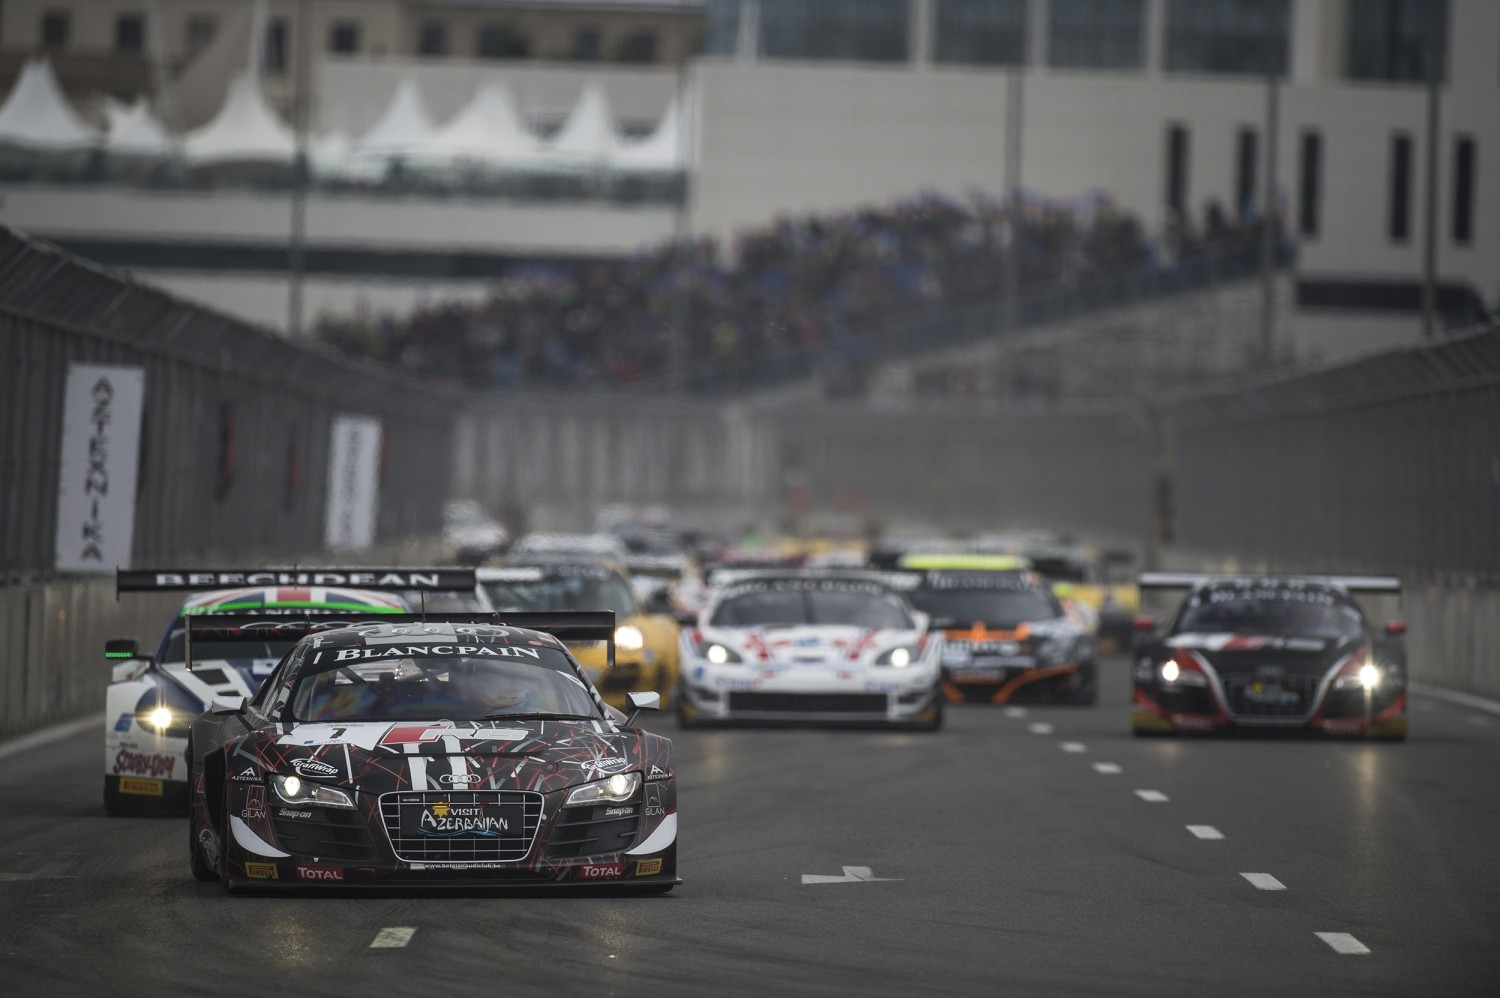 Baku World Challenge provides exciting finale to the 2014 Blancpain Sprint Series